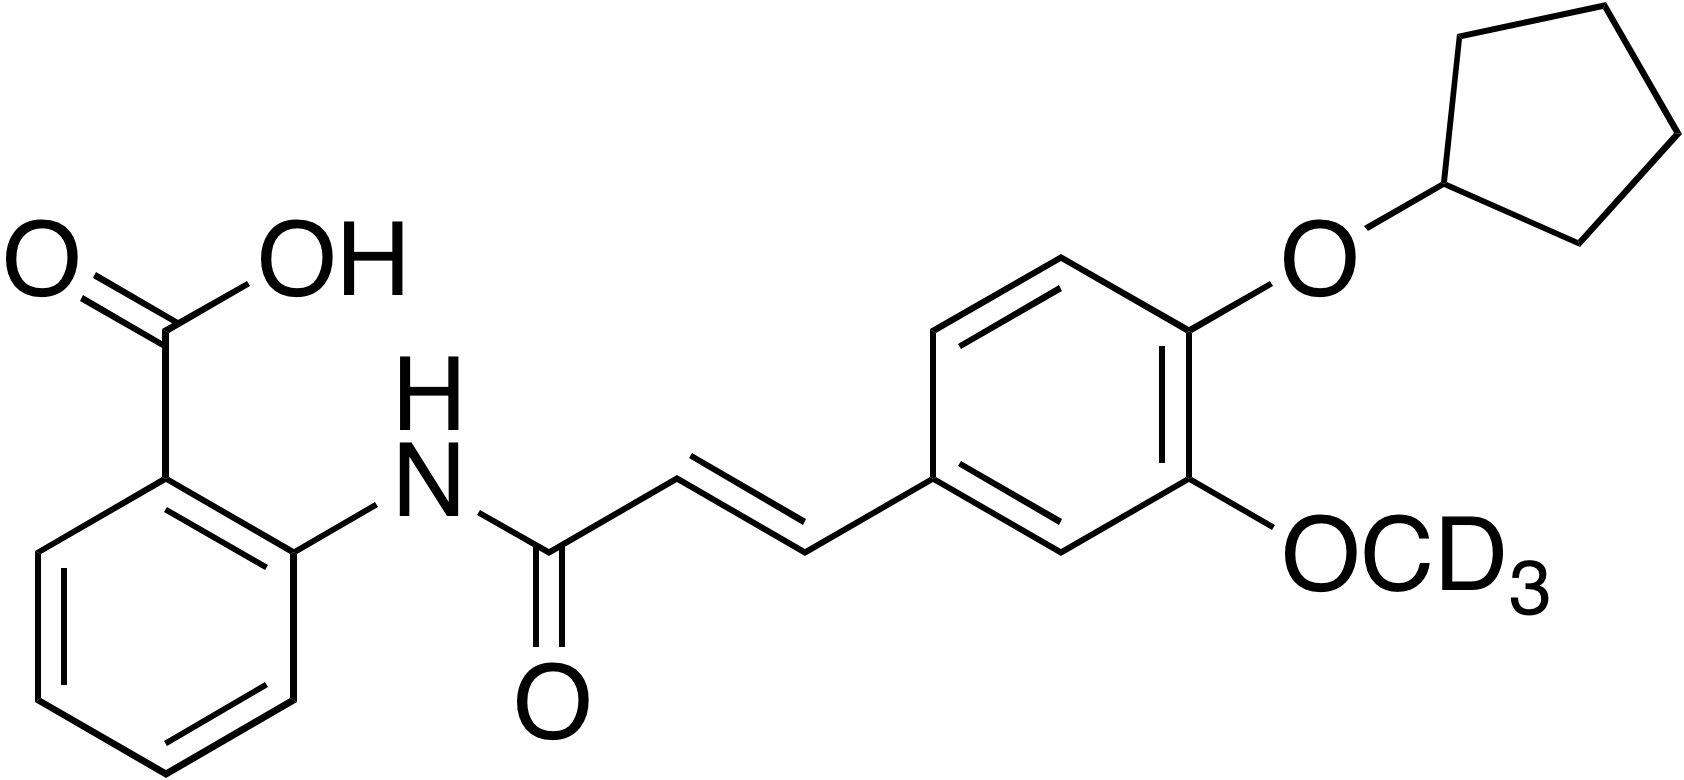 (E)-2-{[3-(4-Cyclopentyloxy-3-methoxy-d<sub>3</sub>-phenyl)-1-oxo-2-propenyl]amino}benzoic acid